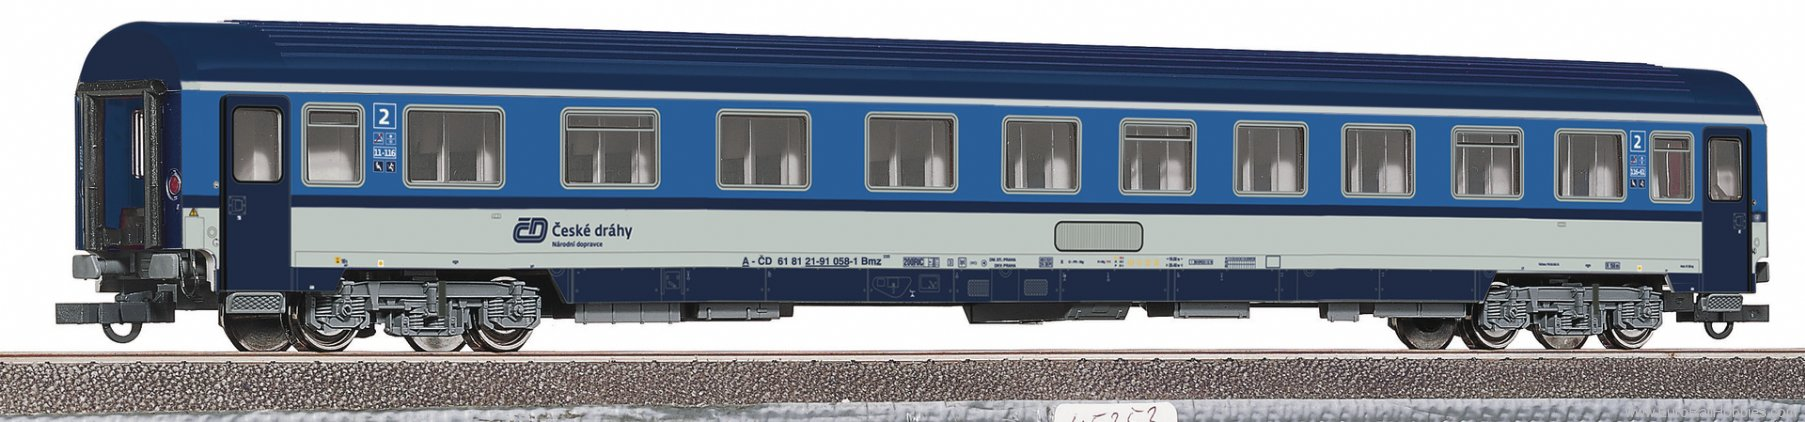 Roco 64645 2nd class passenger carriage, CD